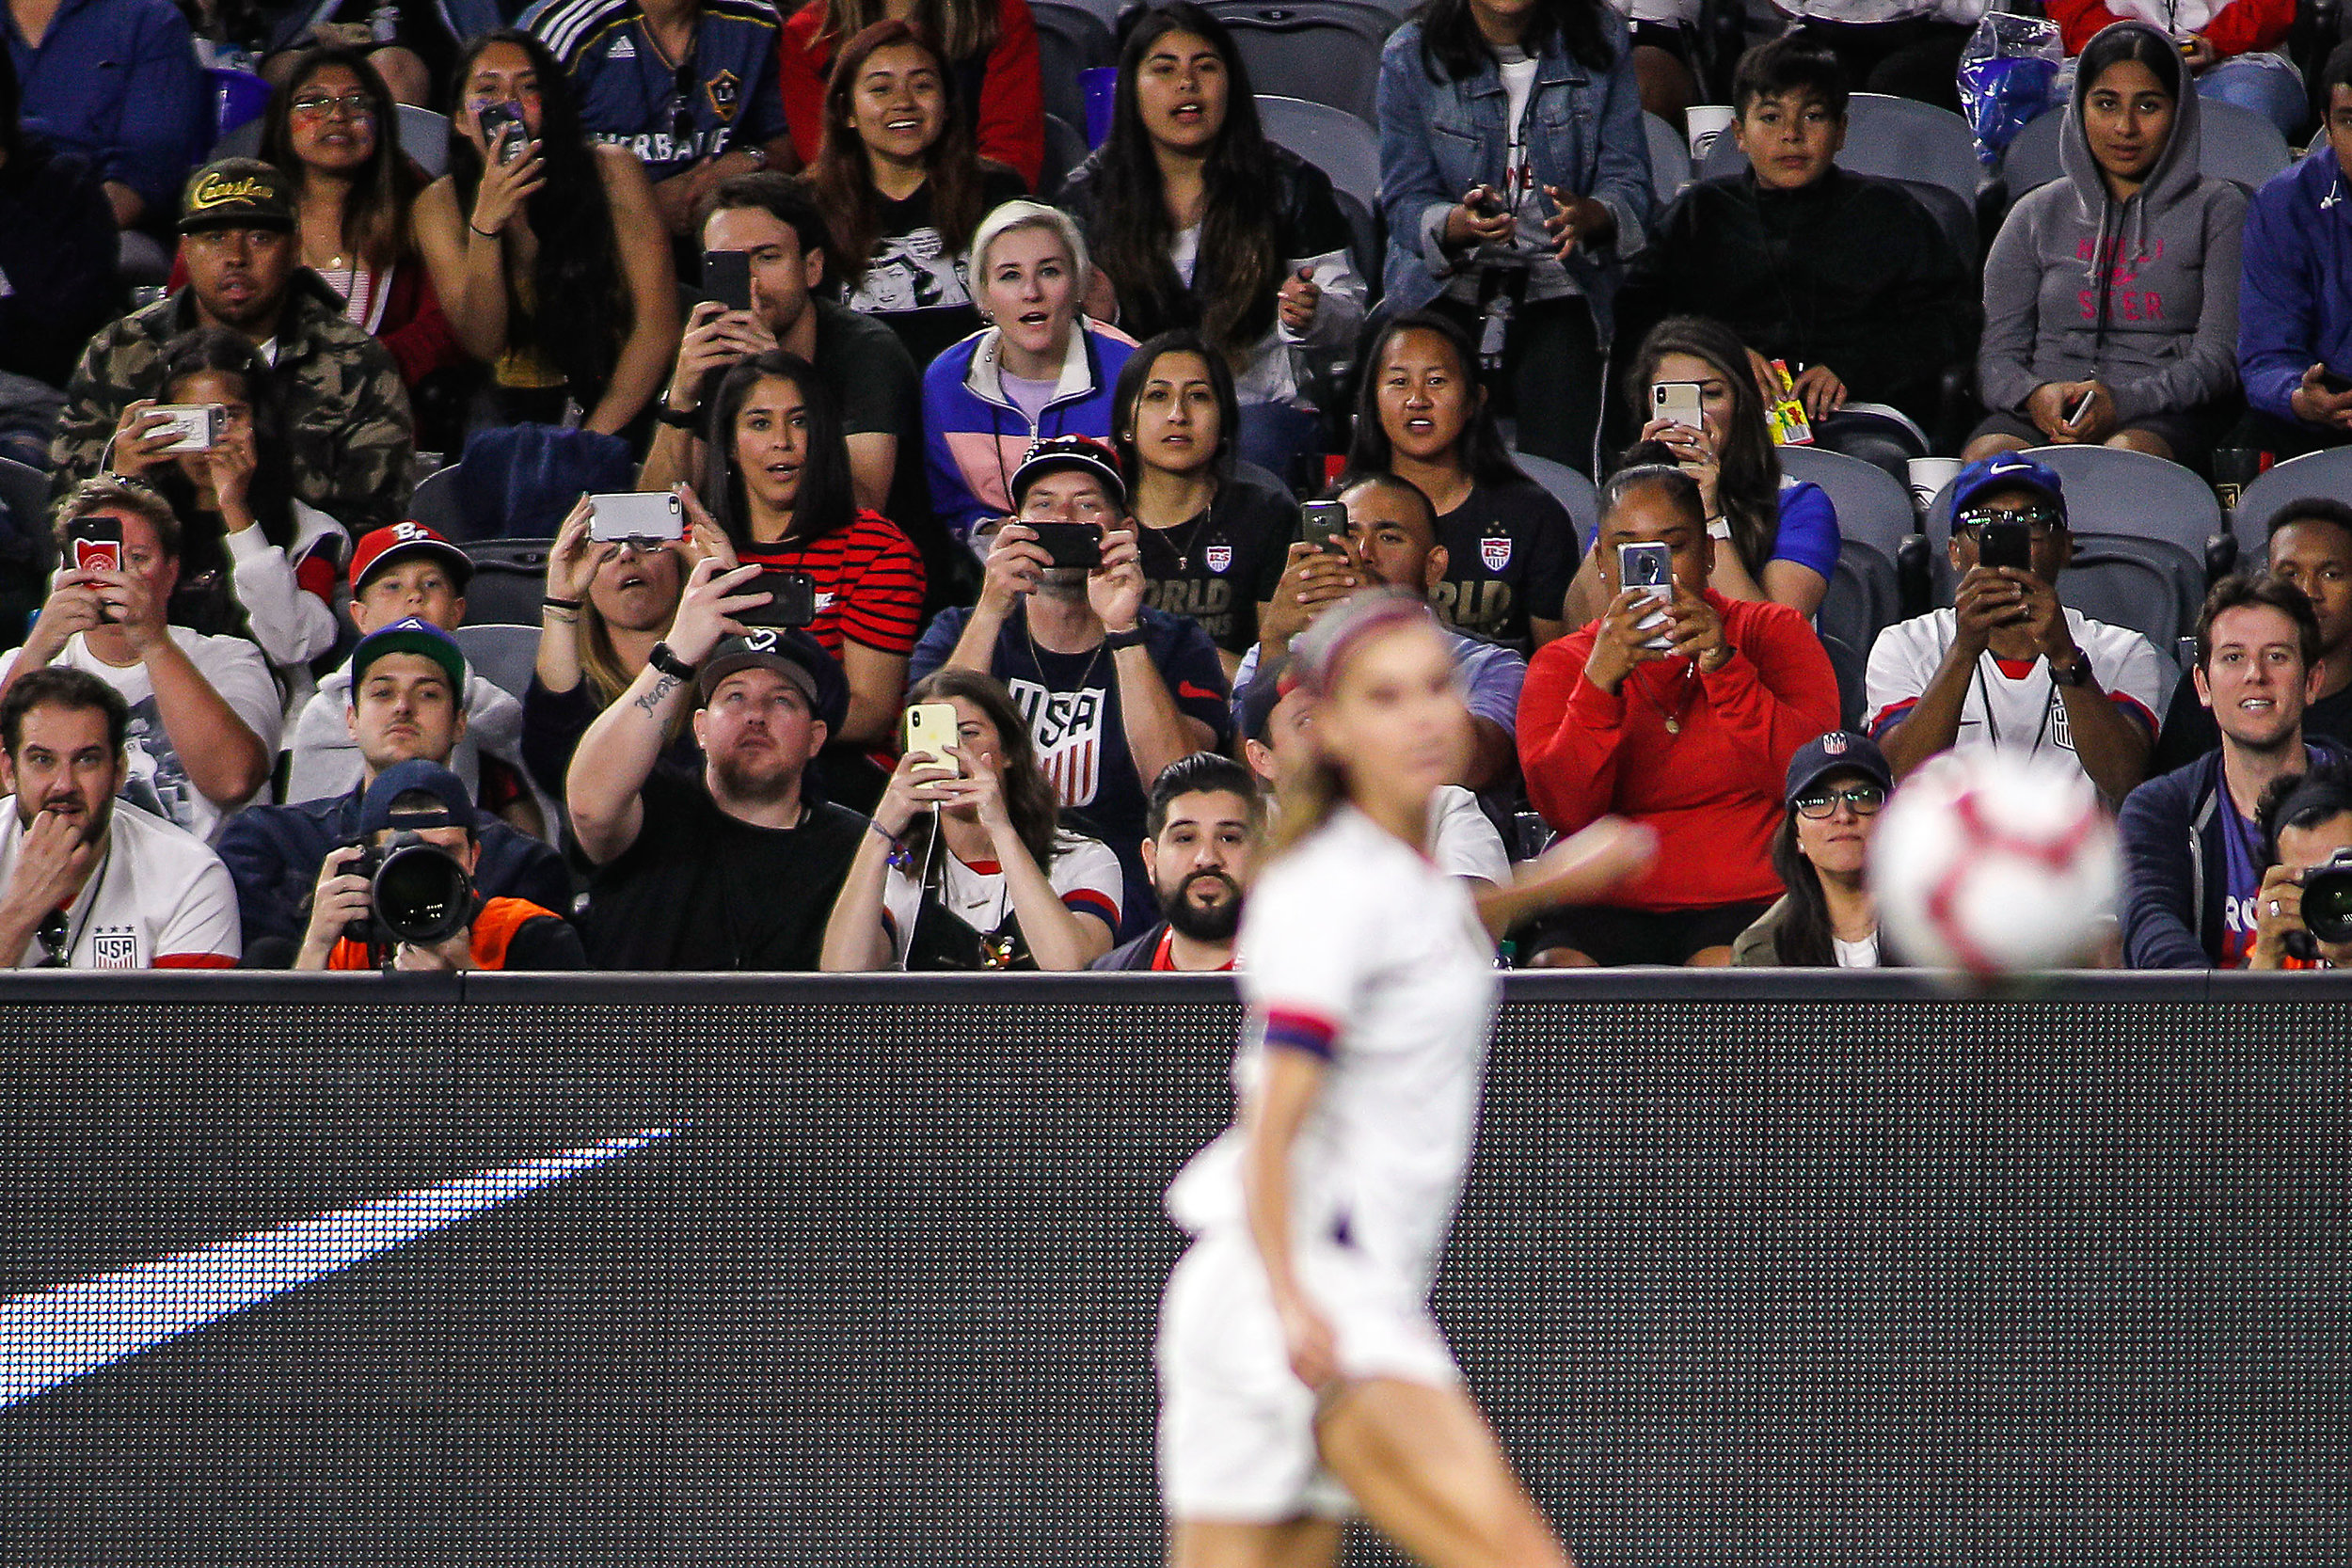 Fans photograph forward Alex Morgan of the United States Women's National Team during the friendly game against Belgium at Banc of California Stadium on April 7, 2019 in Los Angeles, California.